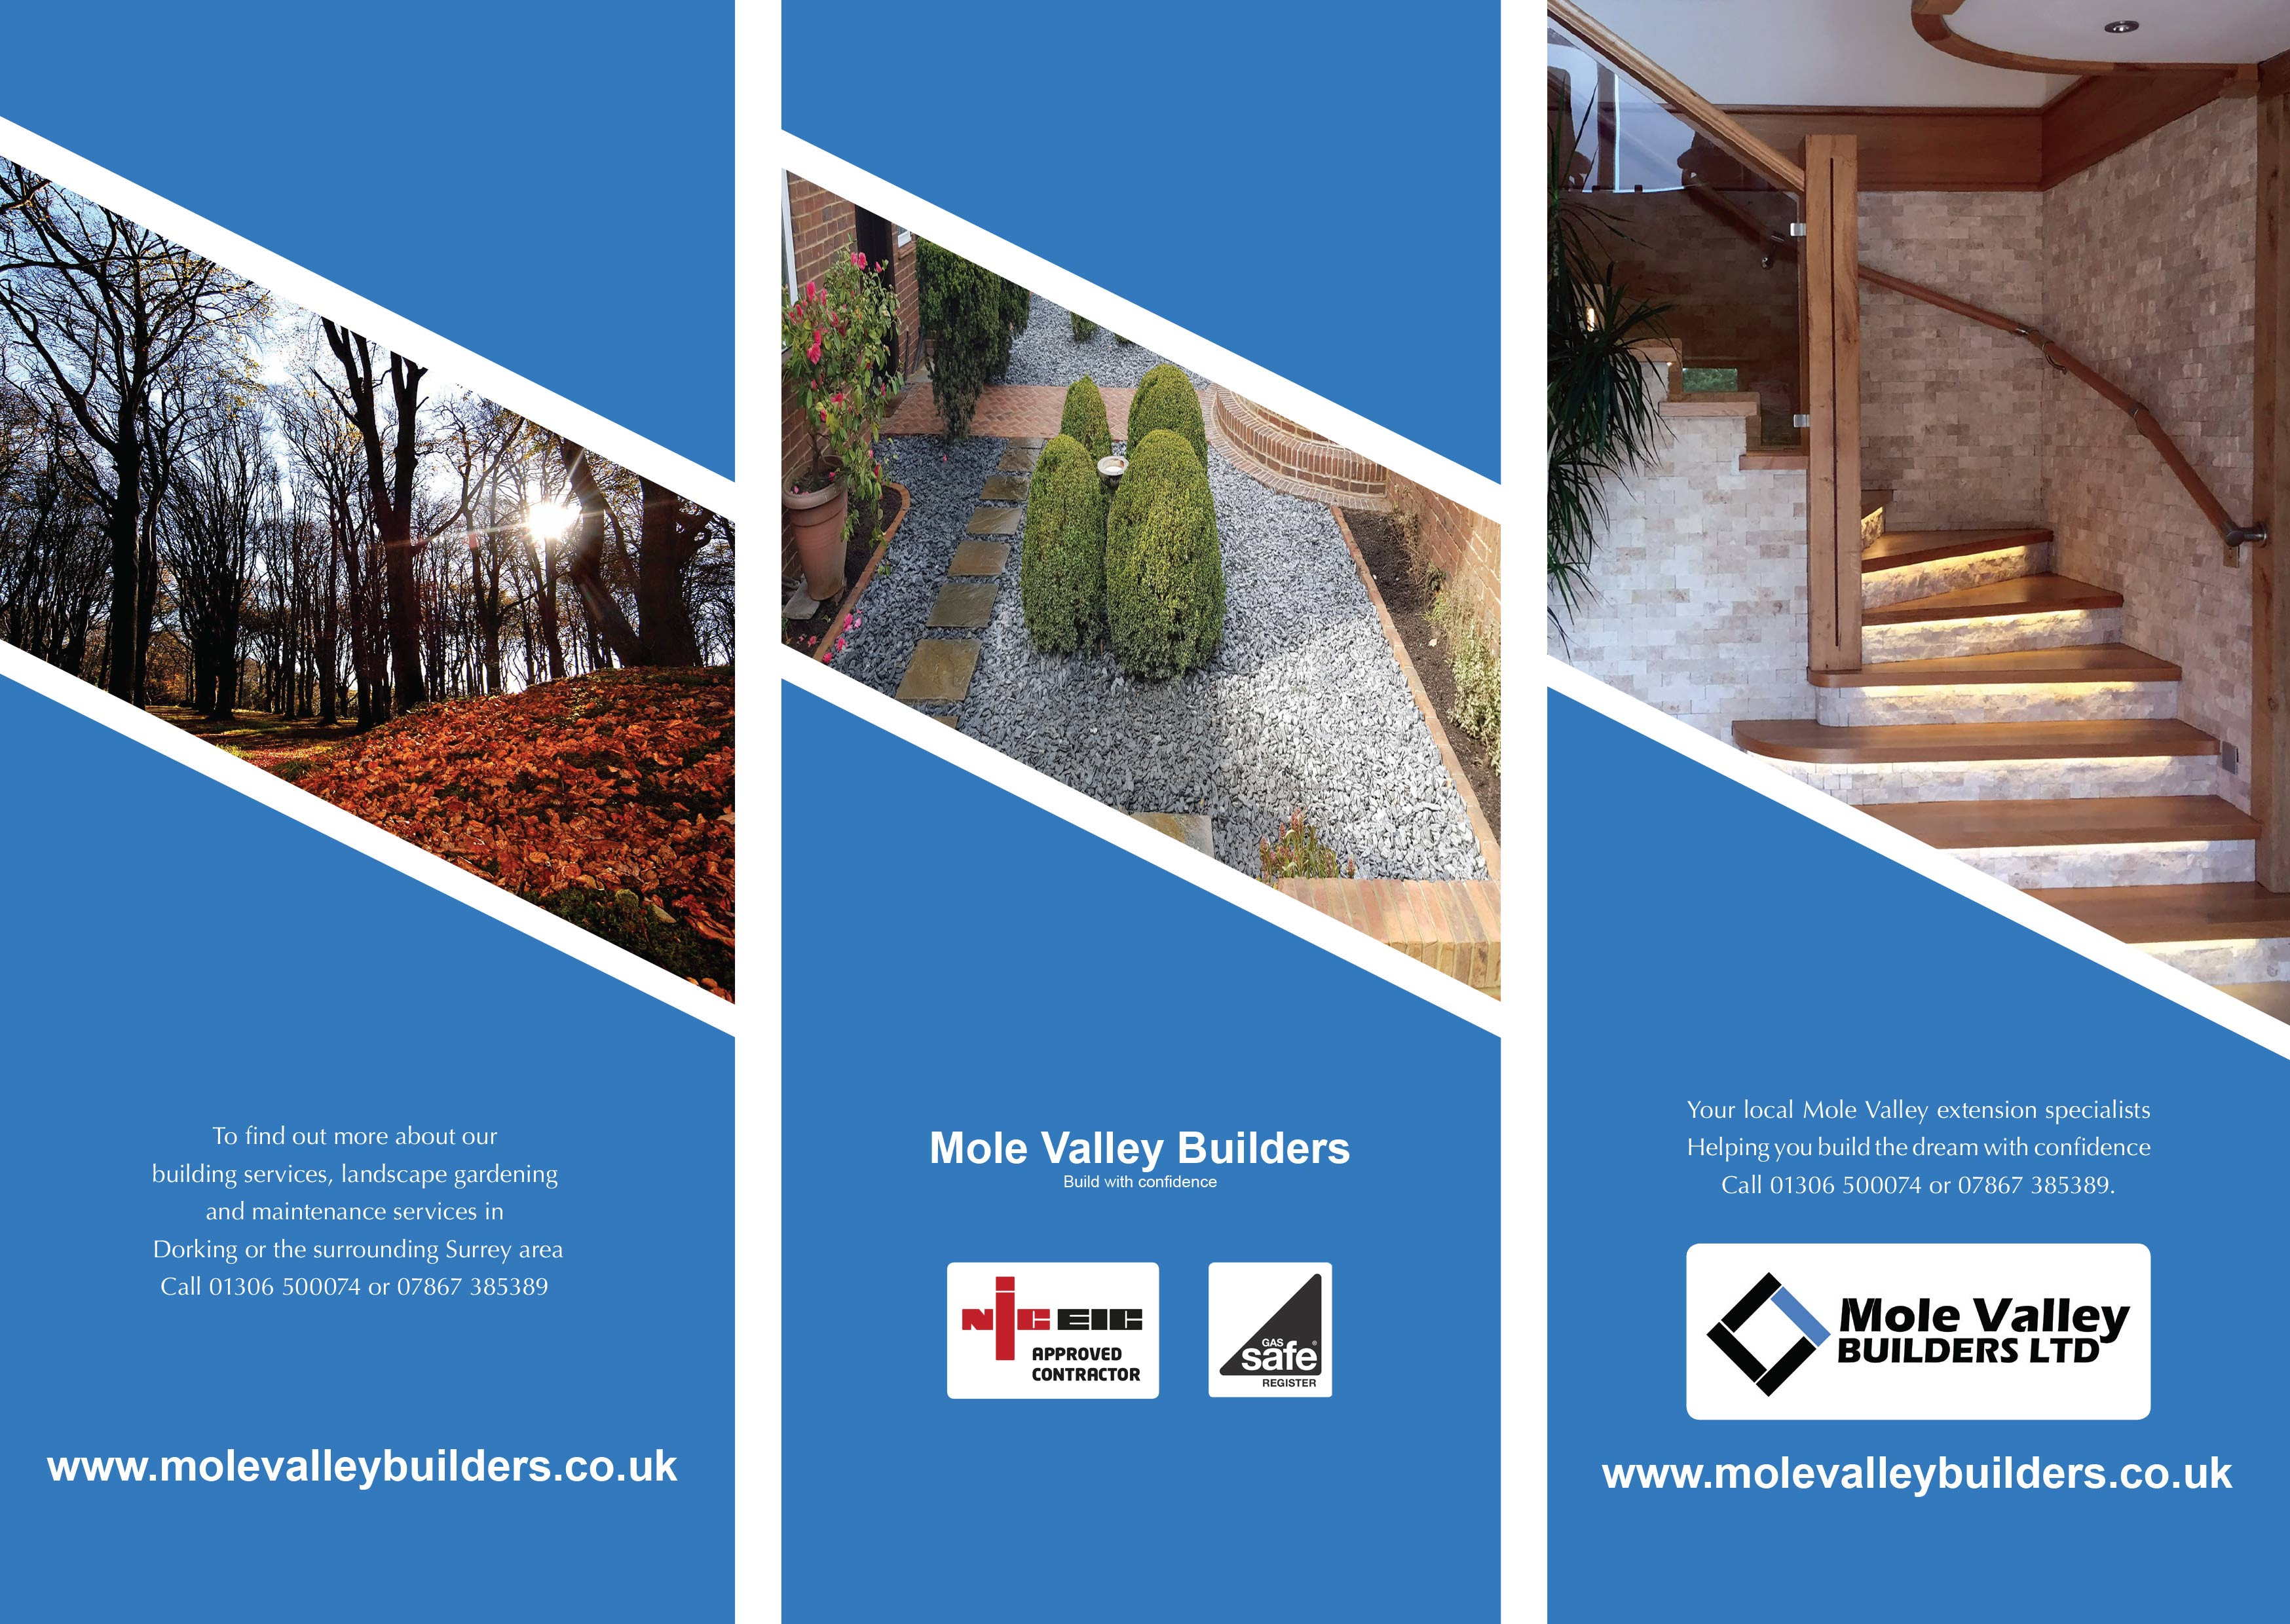 print image Mole Valley Builders leaflet